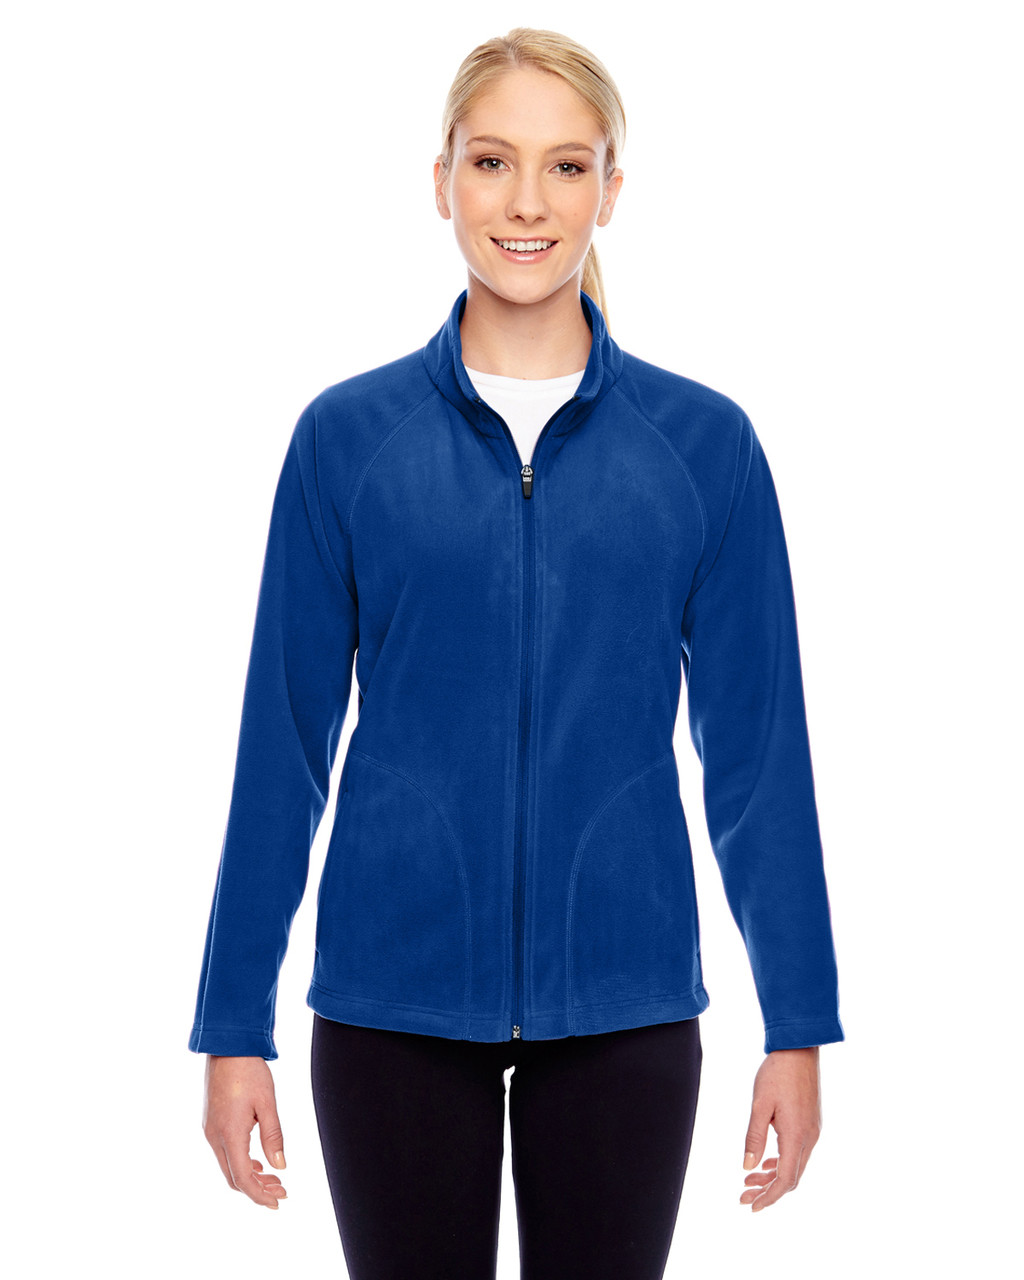 Royal - TT90W Team 365 Ladies' Campus Microfleece Jacket | BlankClothing.ca